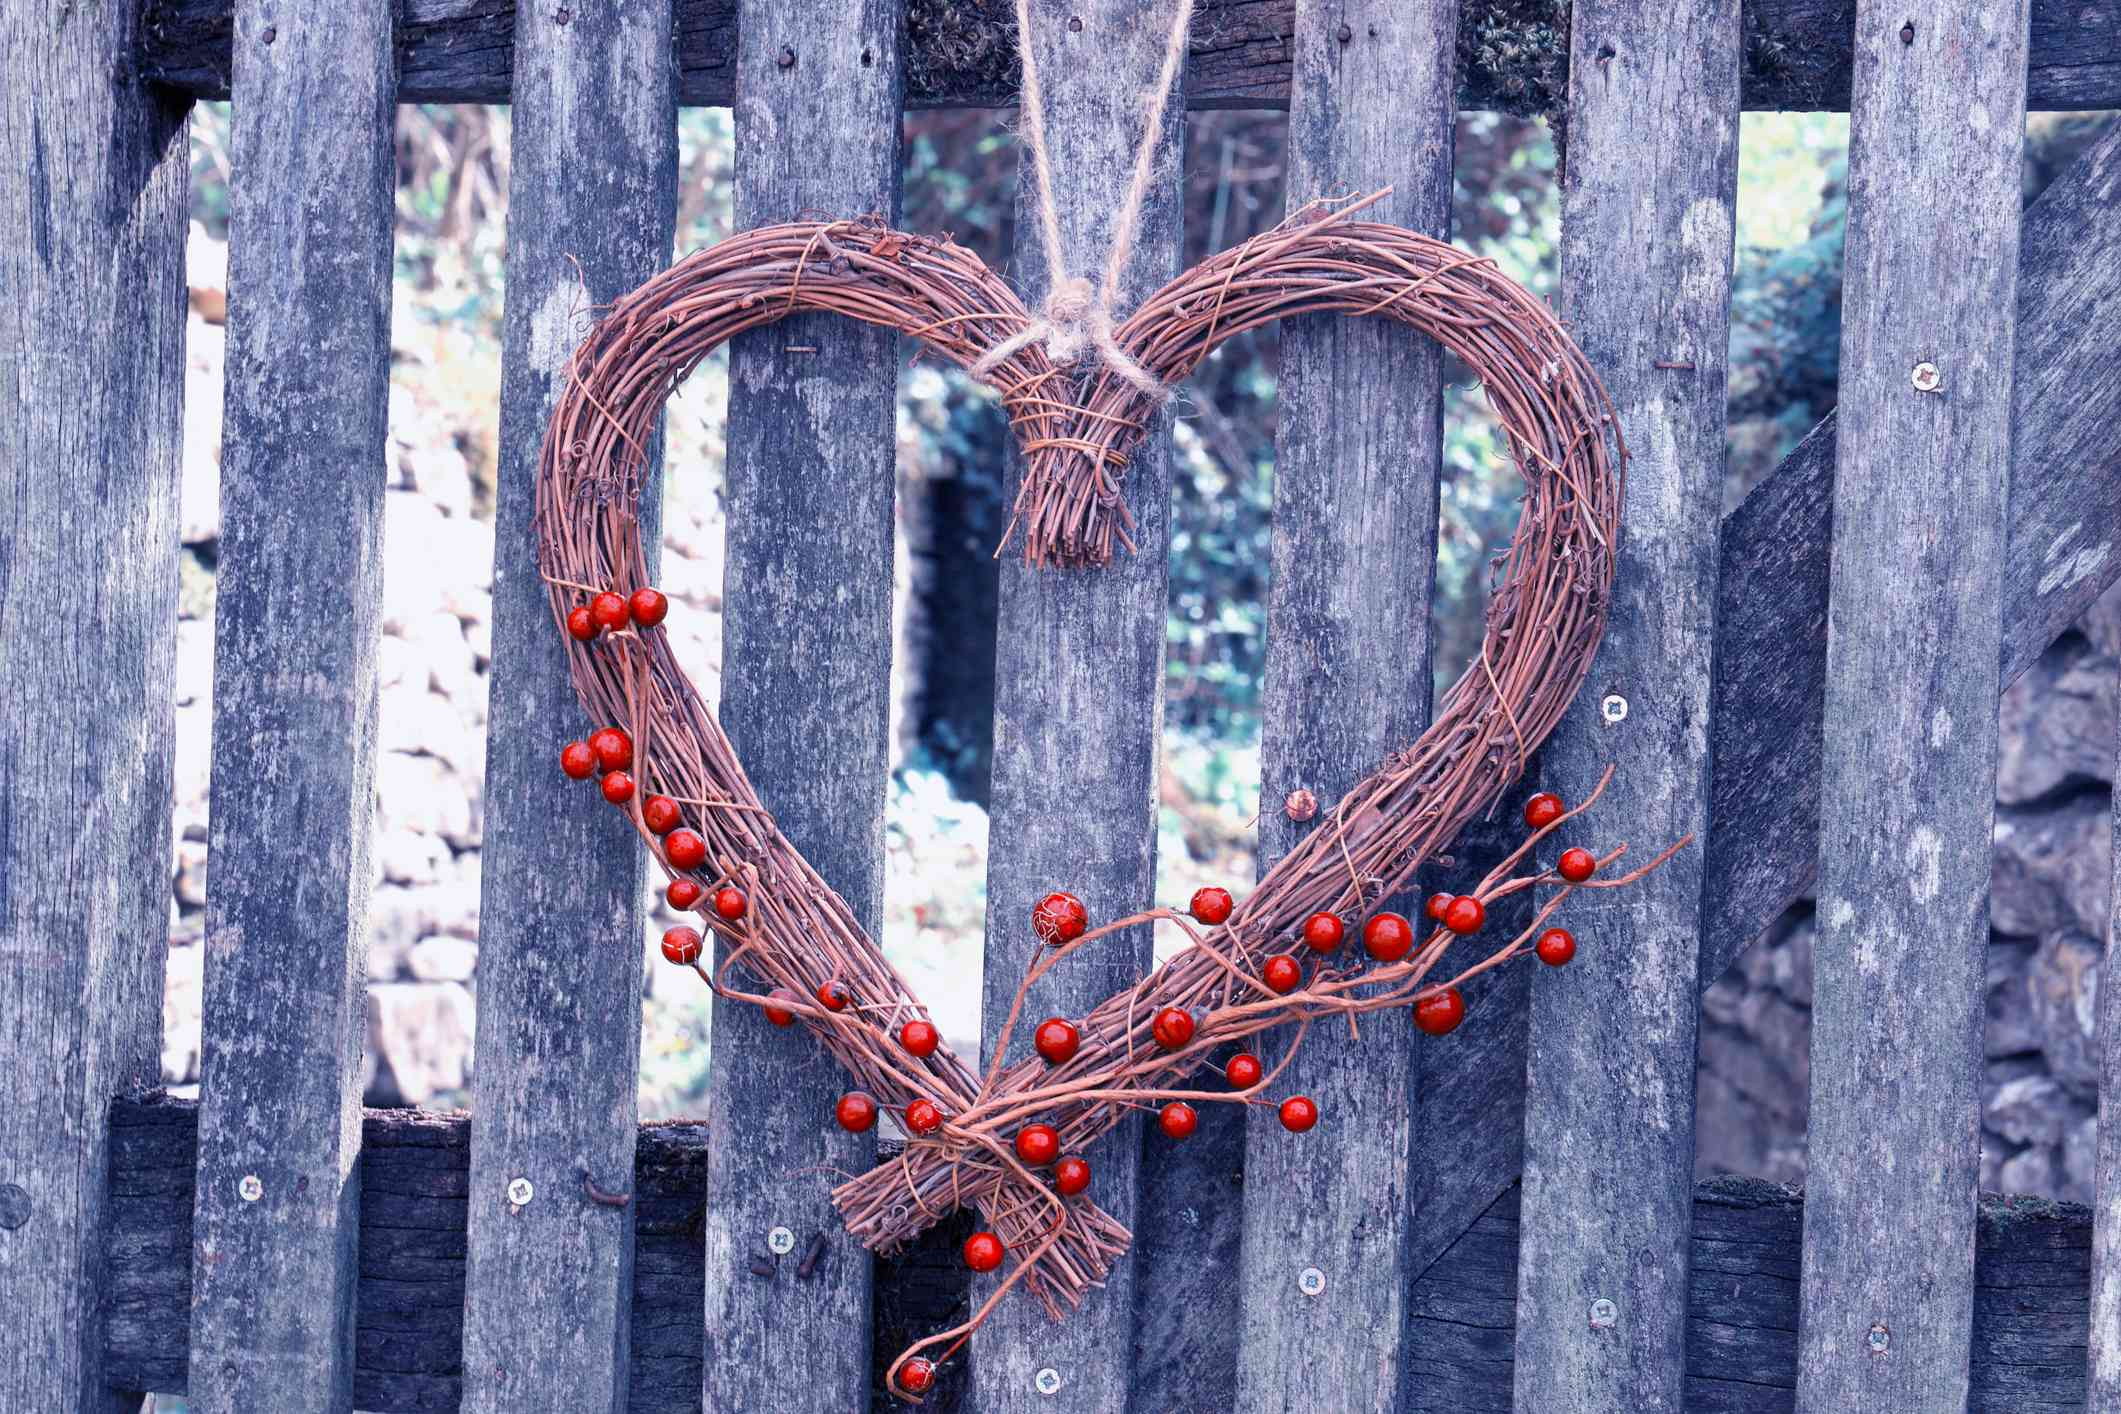 Heart Shape Made From Dried Plant Stems Hanging On Wooden Fence